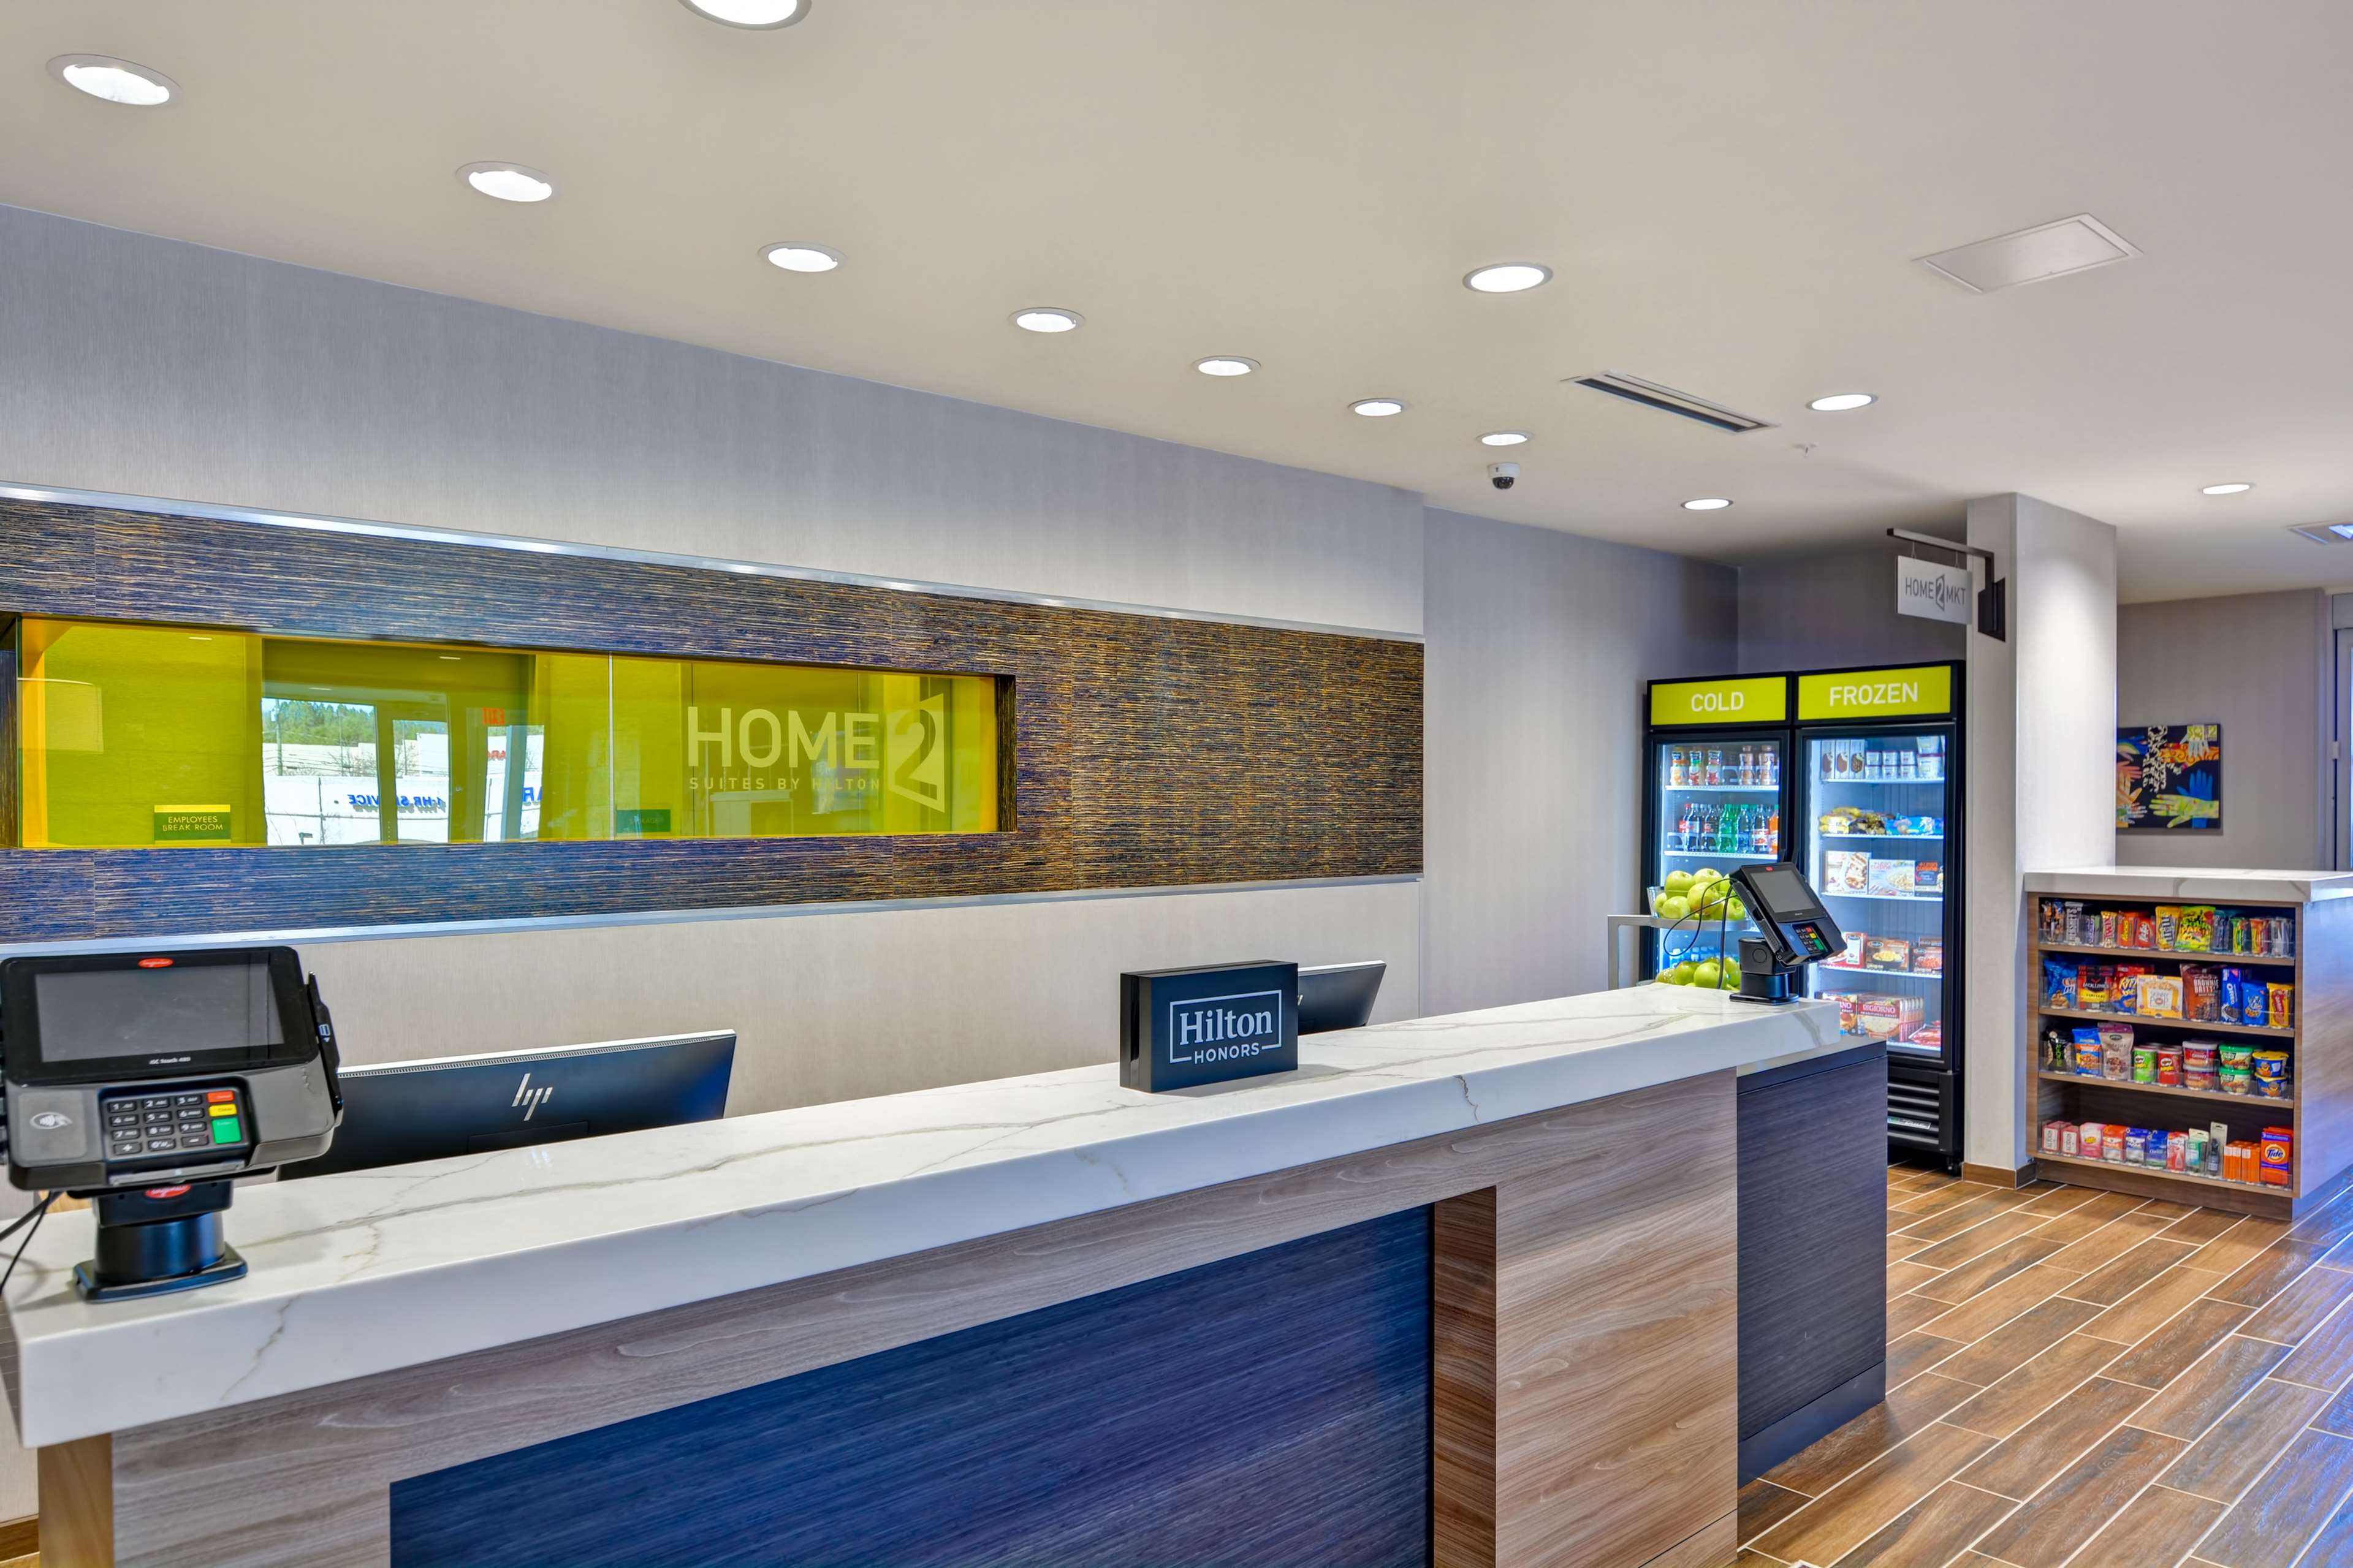 Home2 Suites by Hilton Winston-Salem Hanes Mall image 7